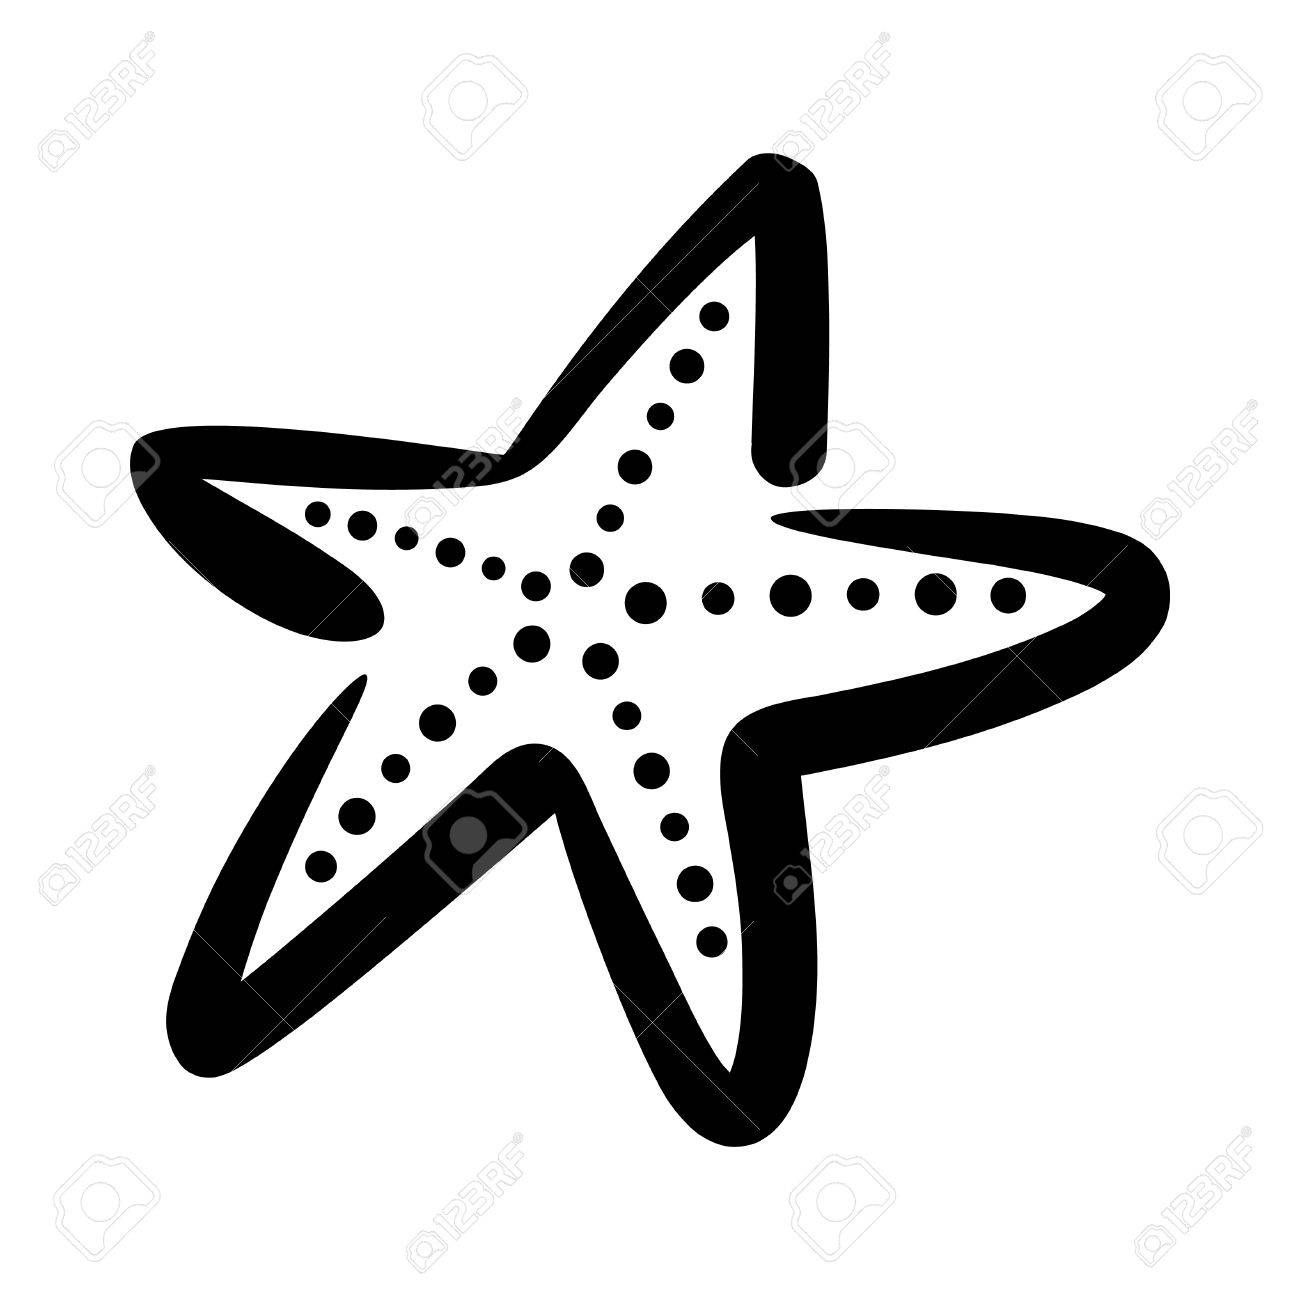 starfish vector icon royalty free cliparts vectors and stock rh 123rf com starfish silhouette vector starfish vector free download